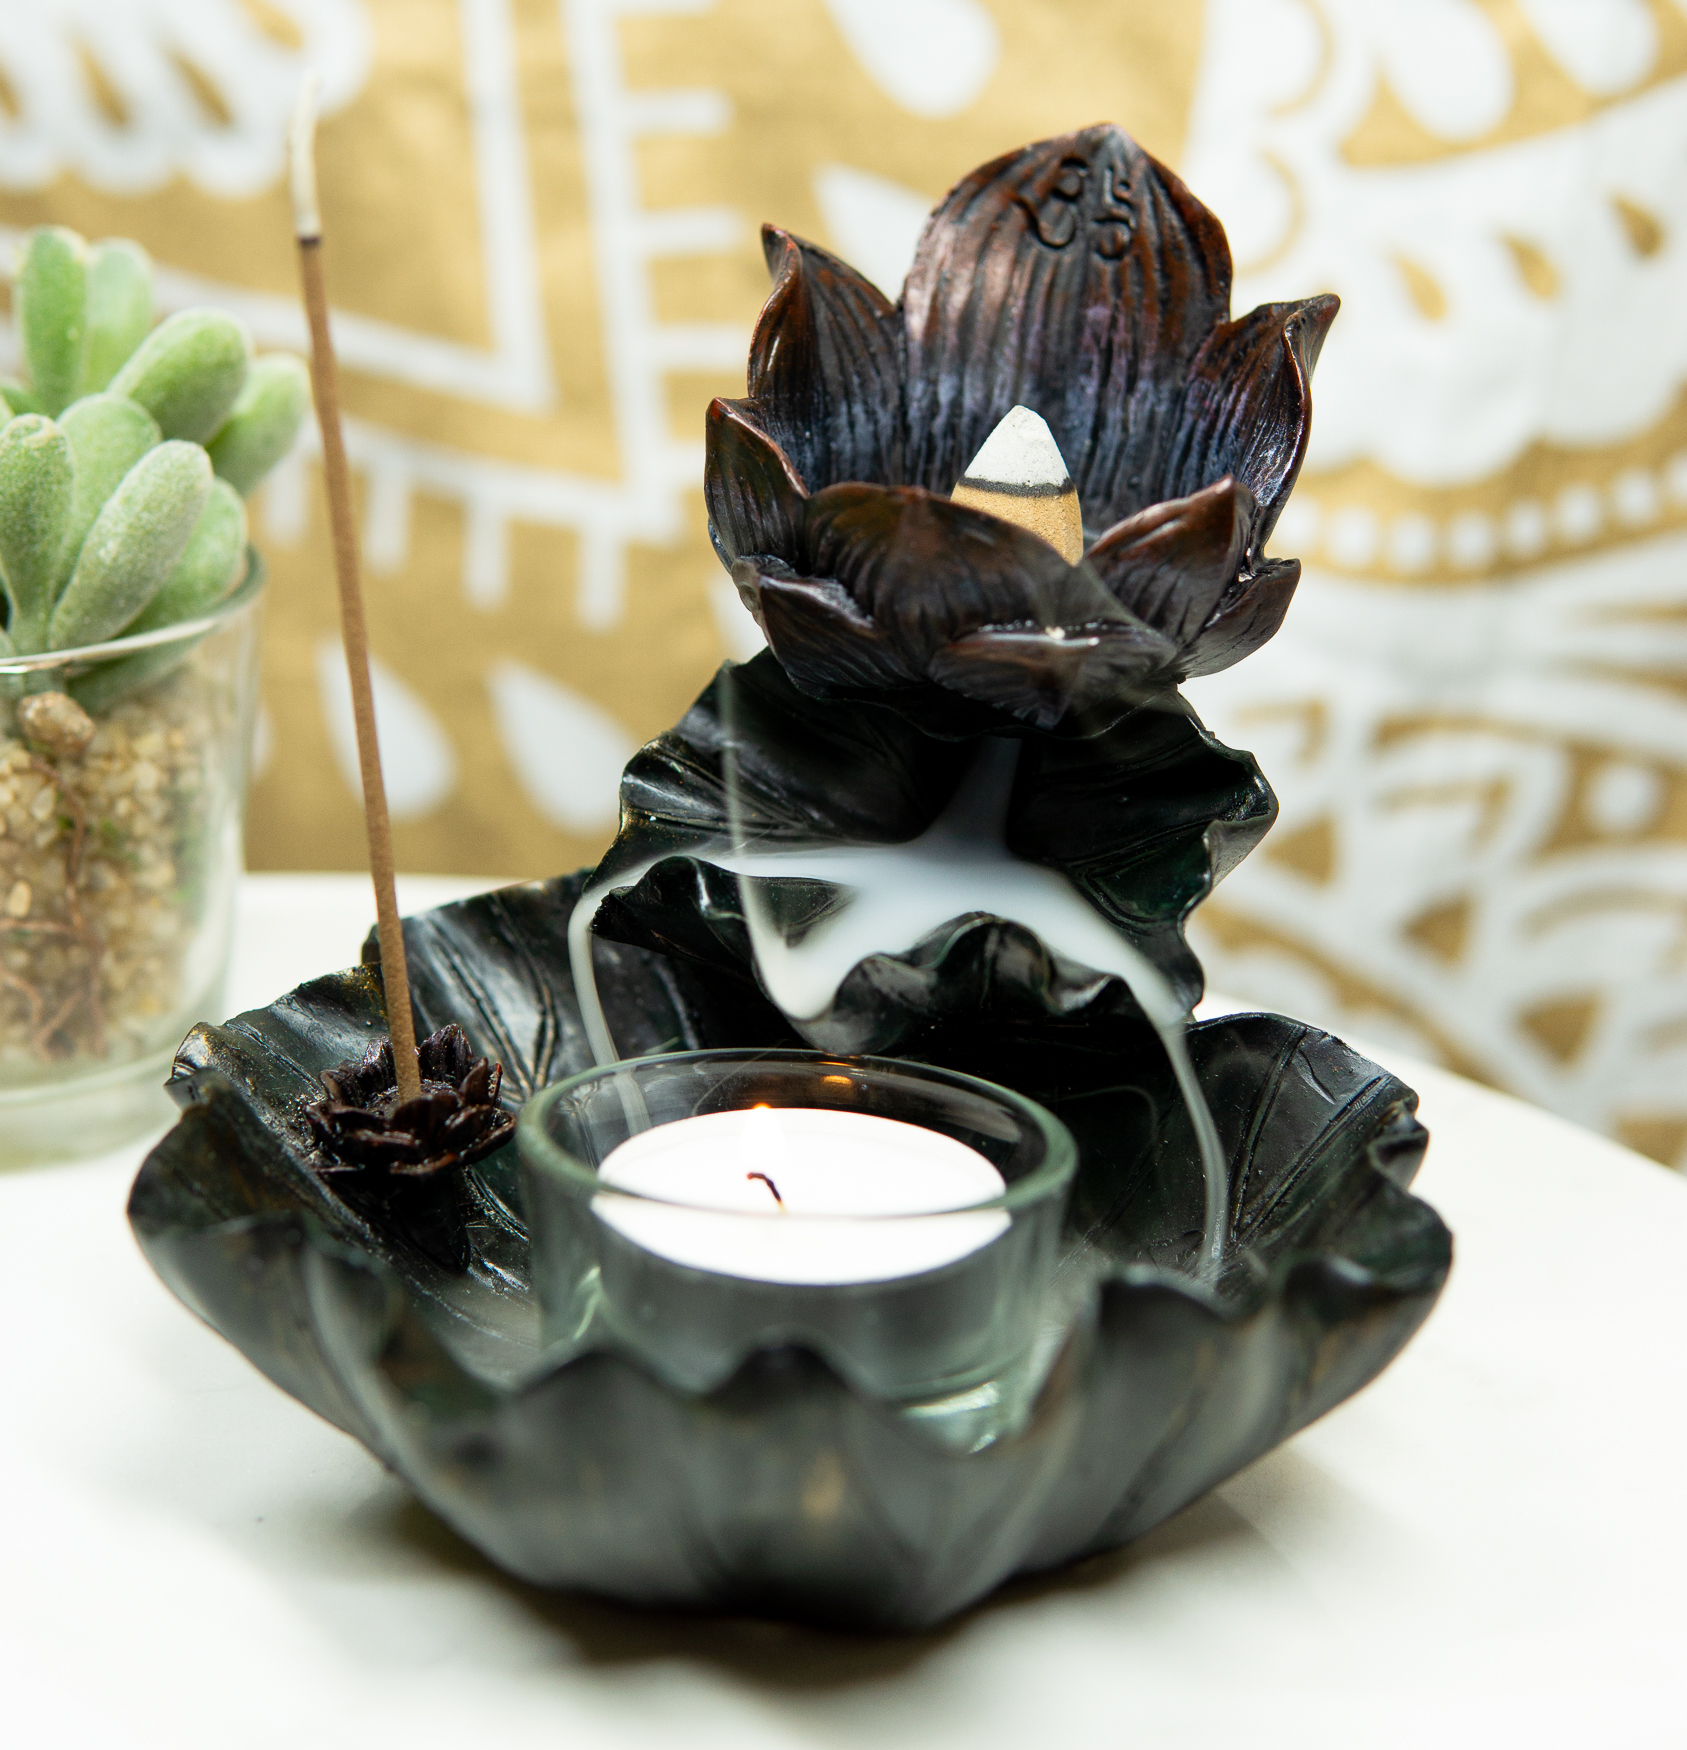 BEST Lotus THAI Incense Cones Aroma Burner Relax Home Fragrance w Cone Holder